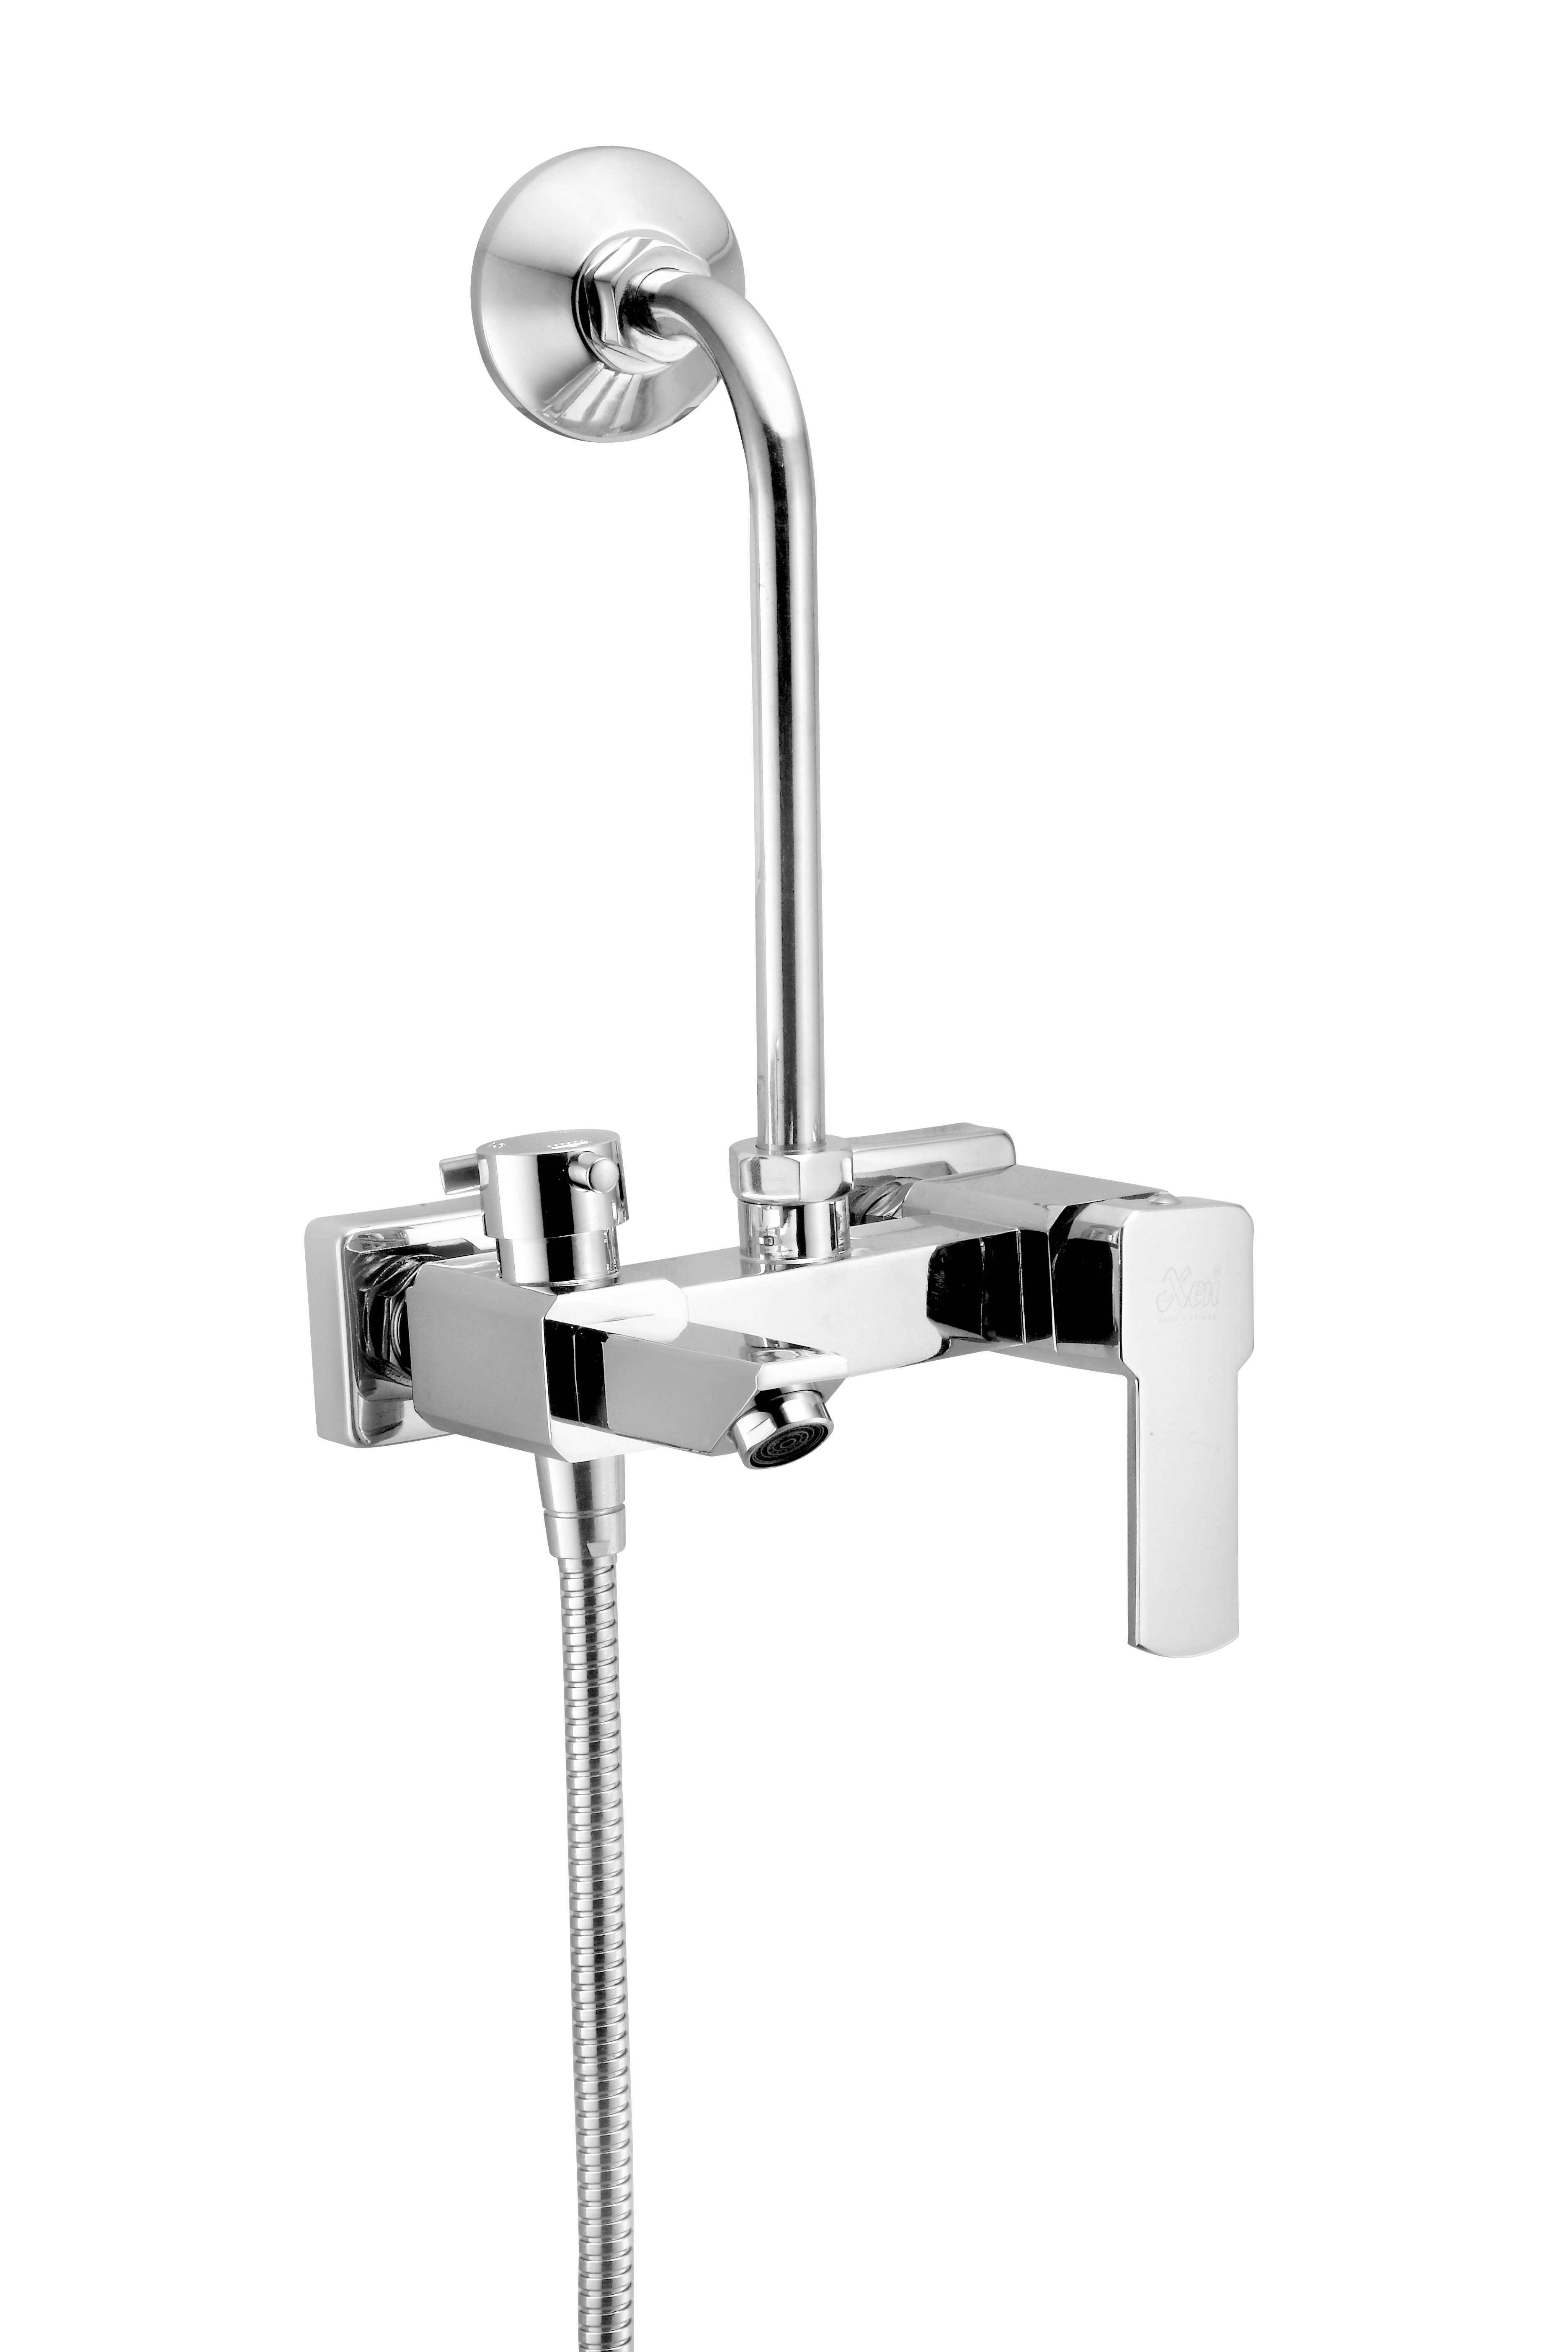 3 In 1 Wall Mixer Single Lever With Bend - Bravo